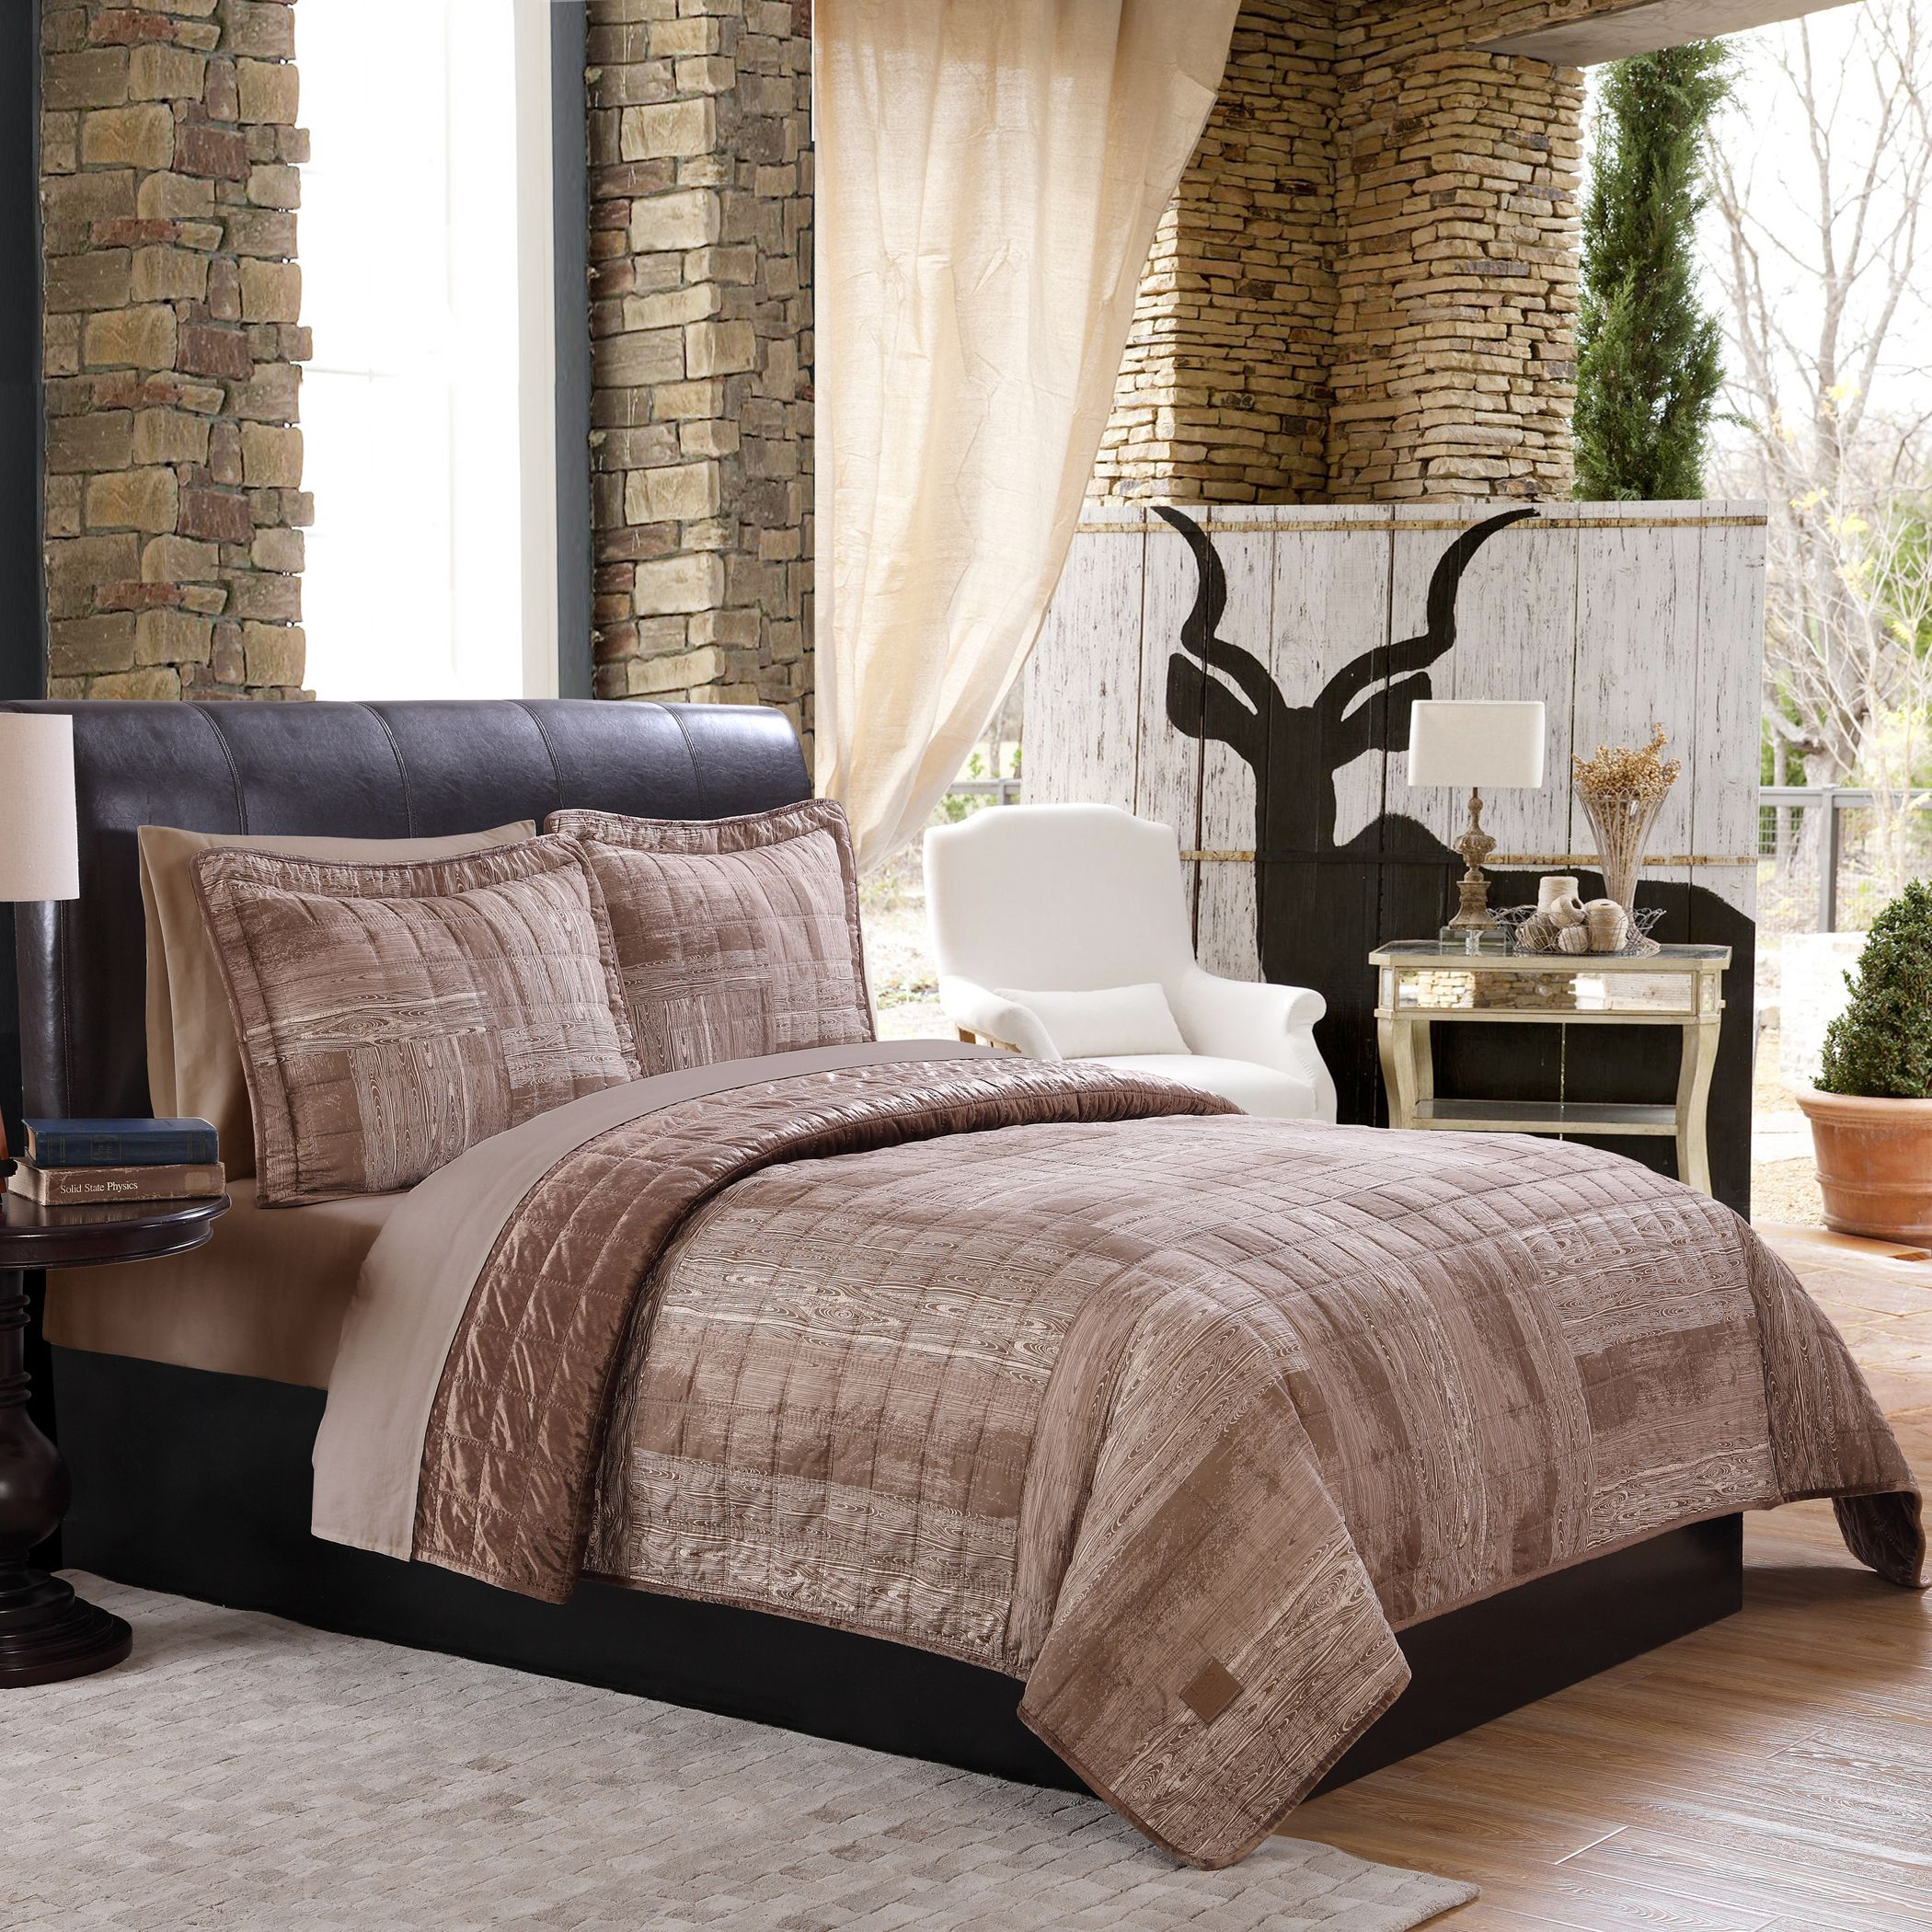 You'll discover the authentic look of wood grain on a quilted fabric is a fabulous look for your bed. This is a winter-weight quilt, made for extra warmth.